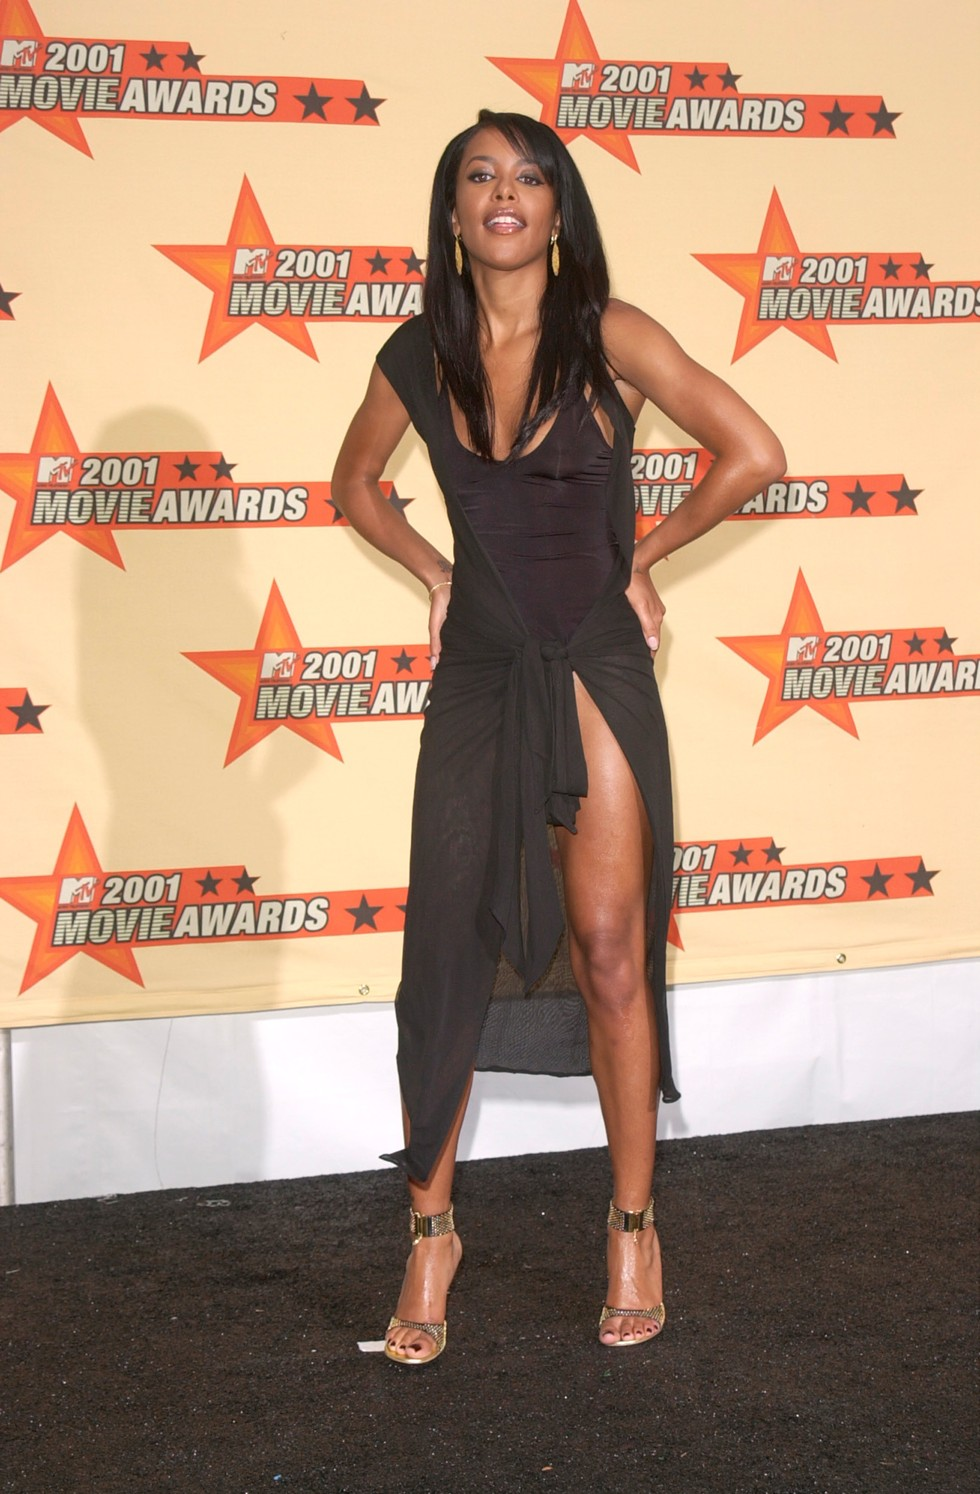 2001 was a whirlwind year for Aaliyah. - FEATUREFLASH PHOTO AGENCY / SHUTTERSTOCK.COM